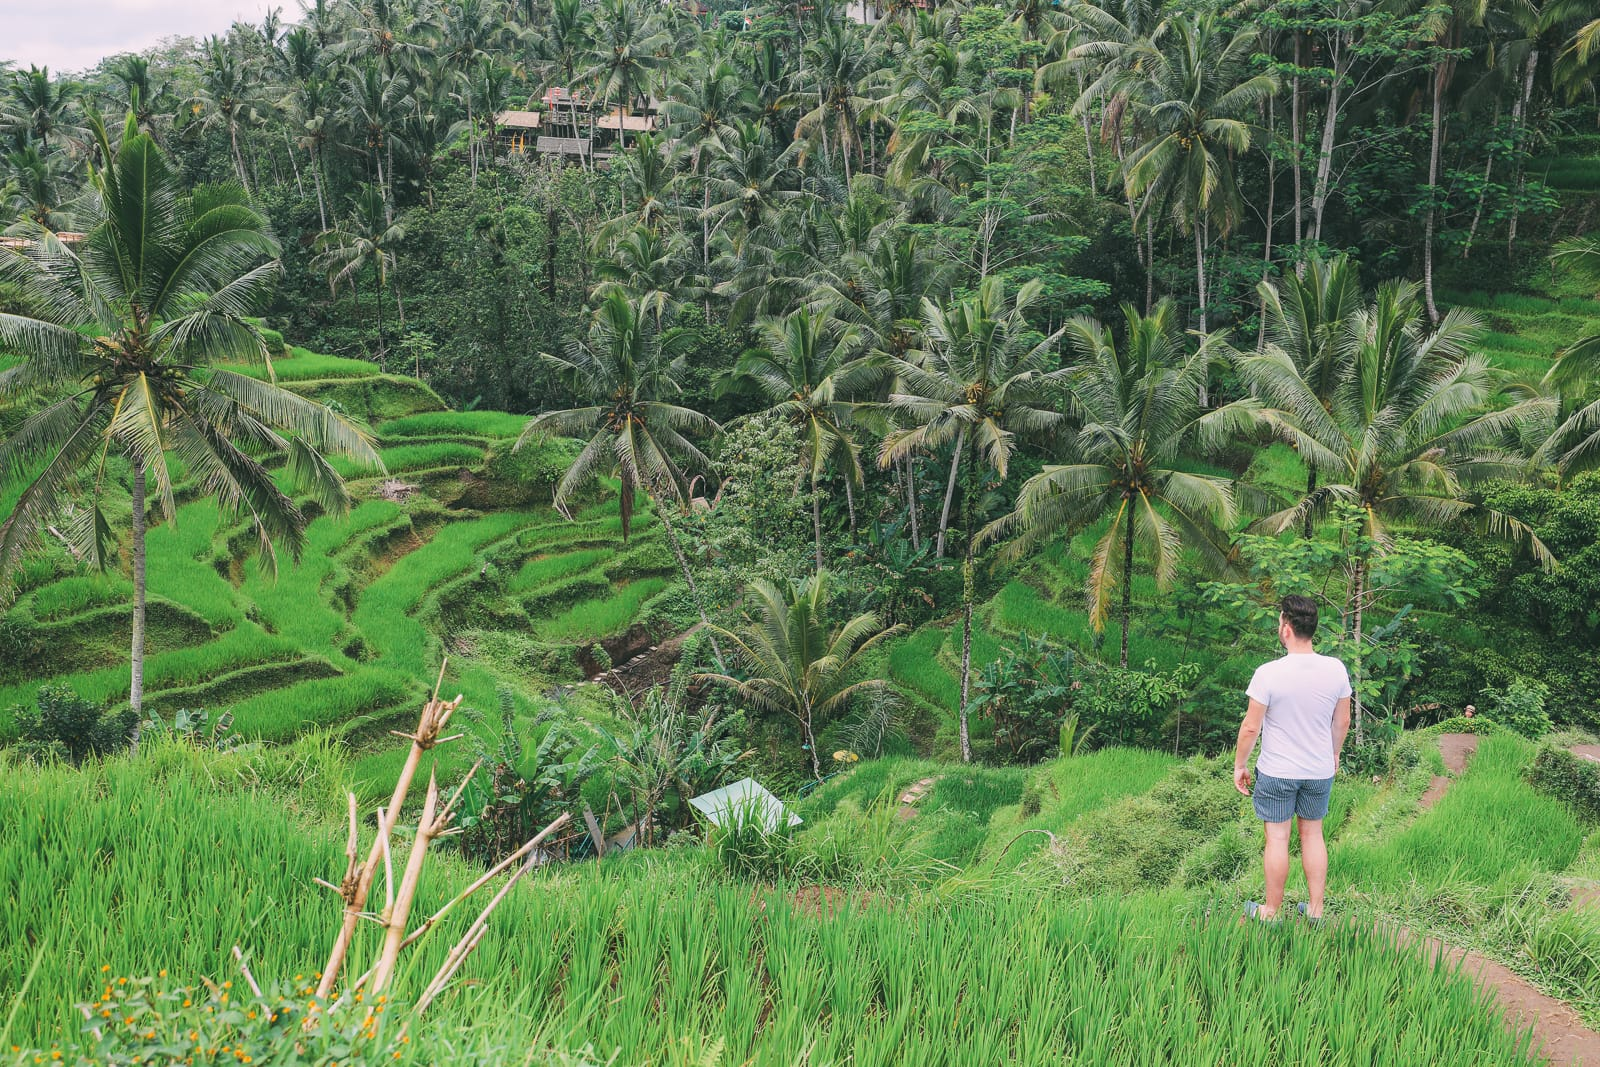 Bali Travel - Tegalalang Rice Terrace In Ubud And Gunung Kawi Temple (11)